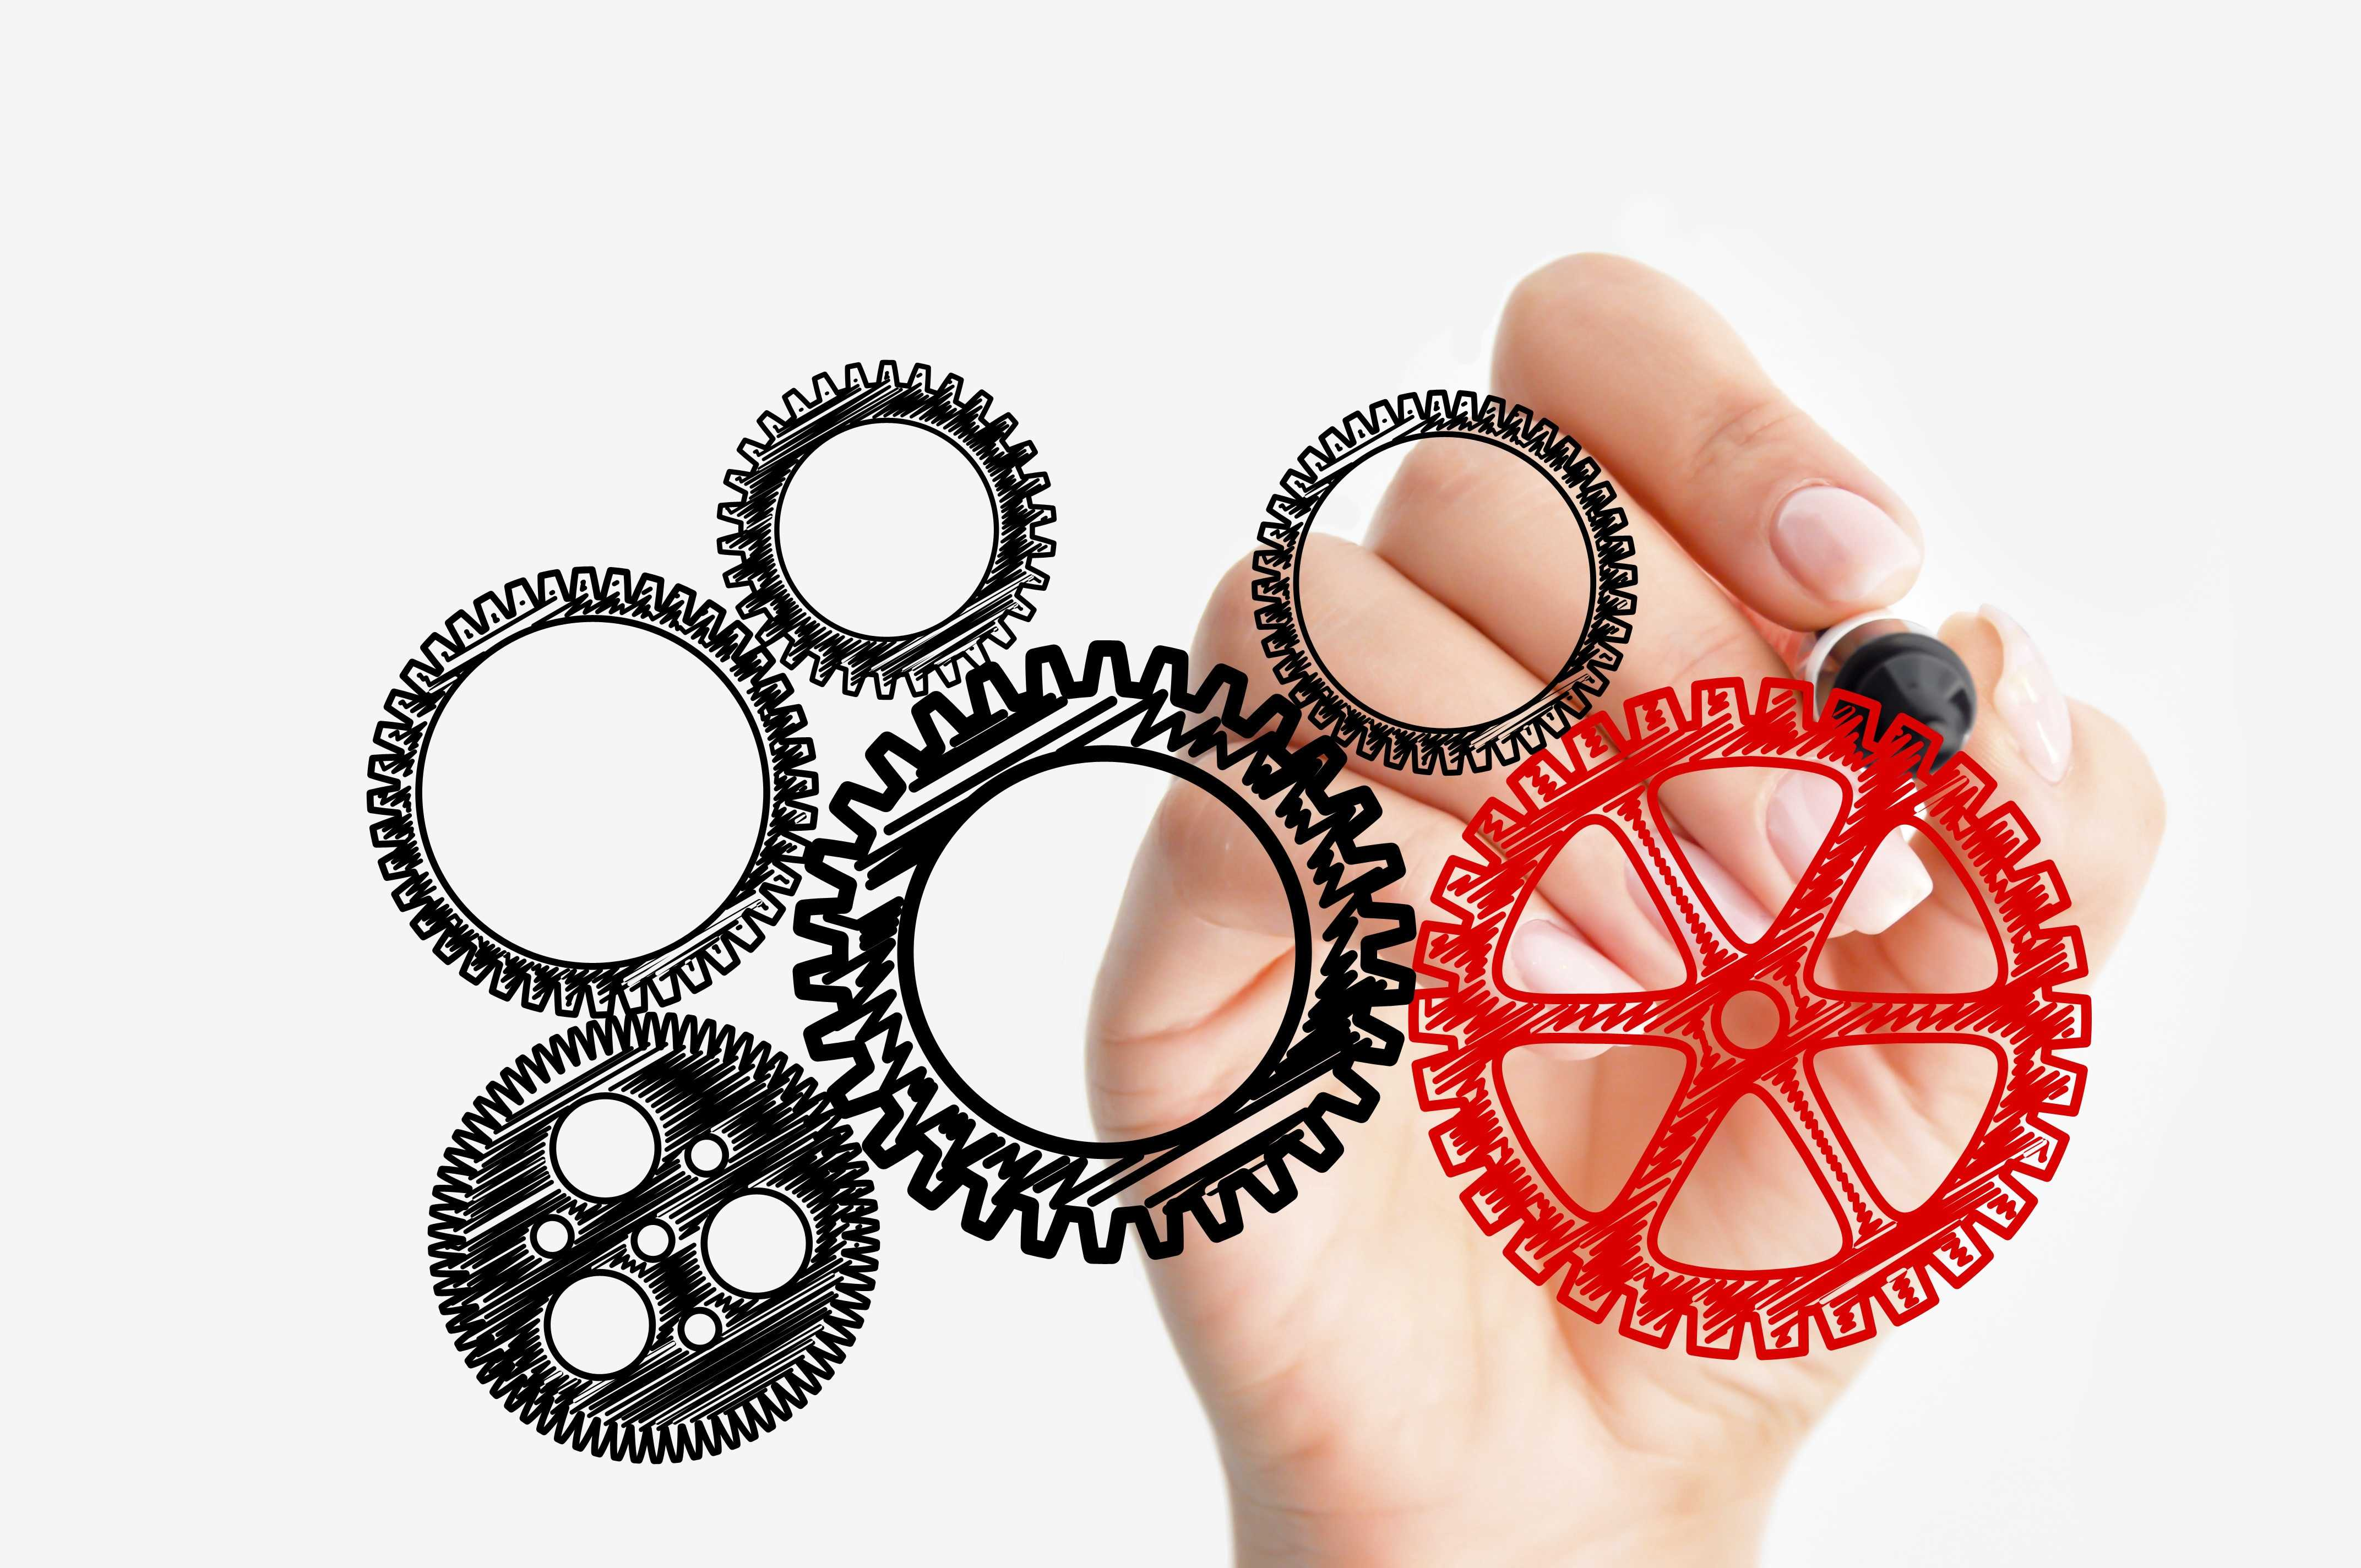 Marketing automation gears